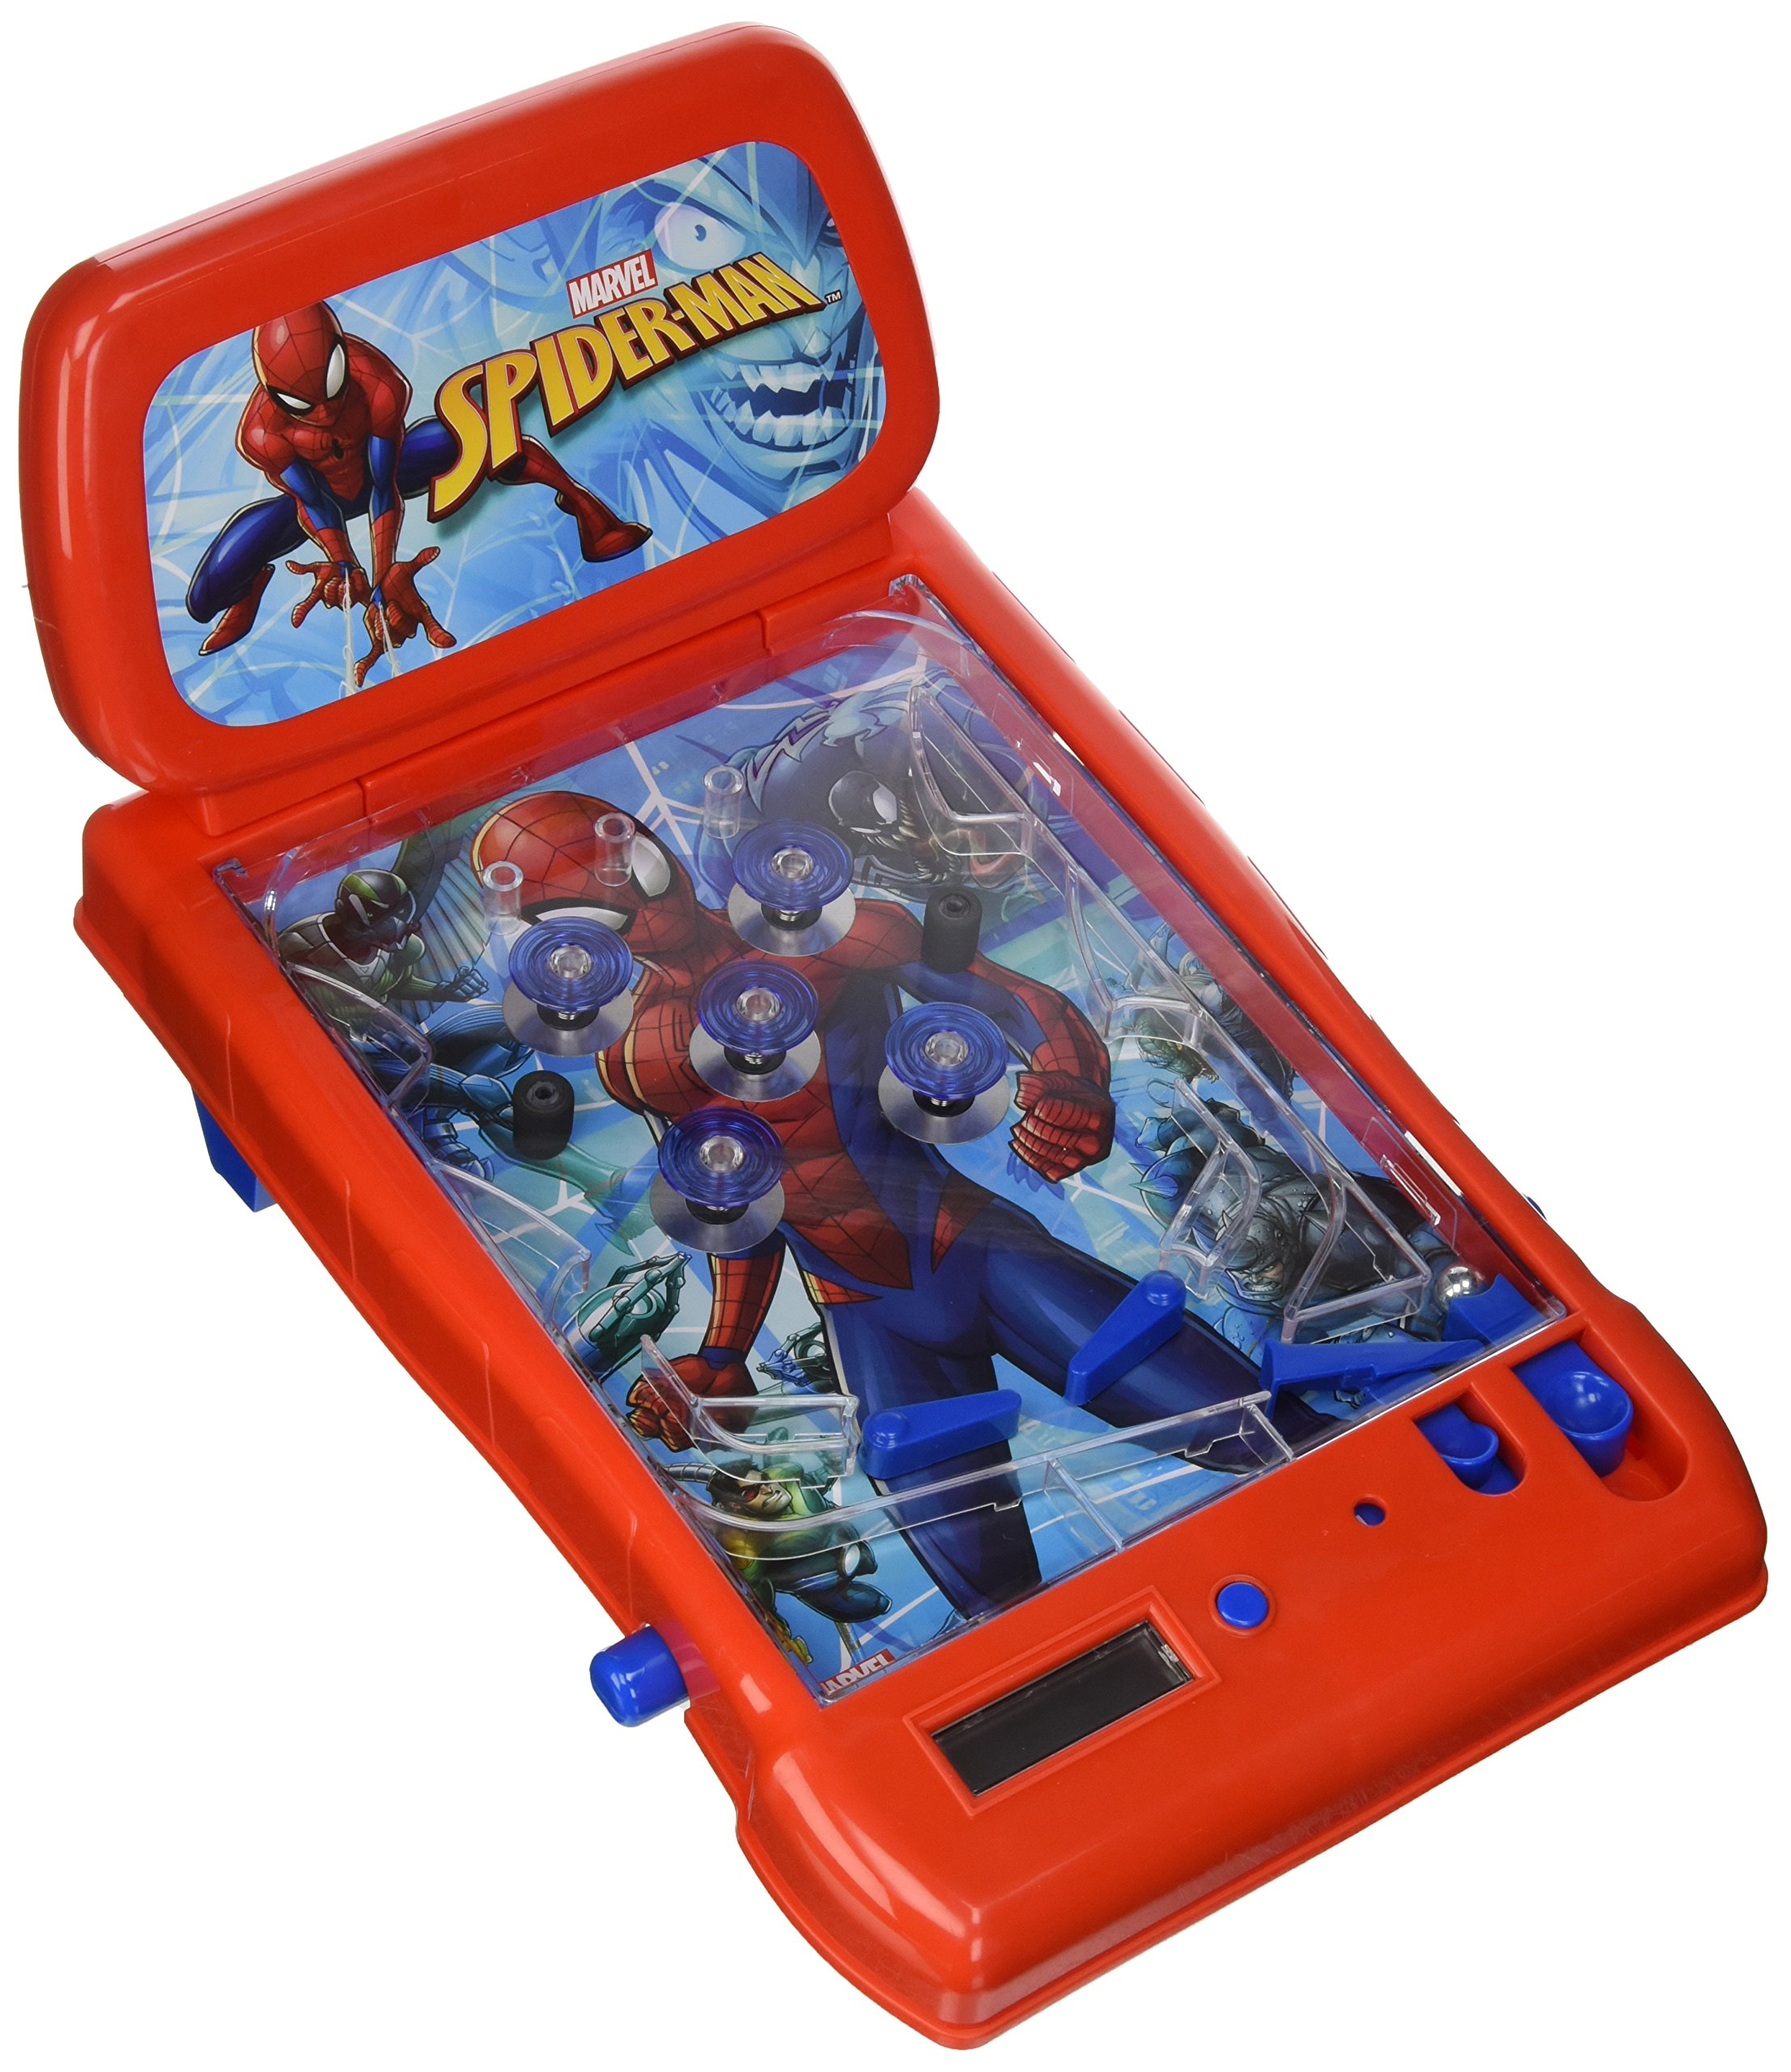 THE ULTIMATE SPIDER-MAN Table Top Pinball Toy by Ultimate Spider-Man